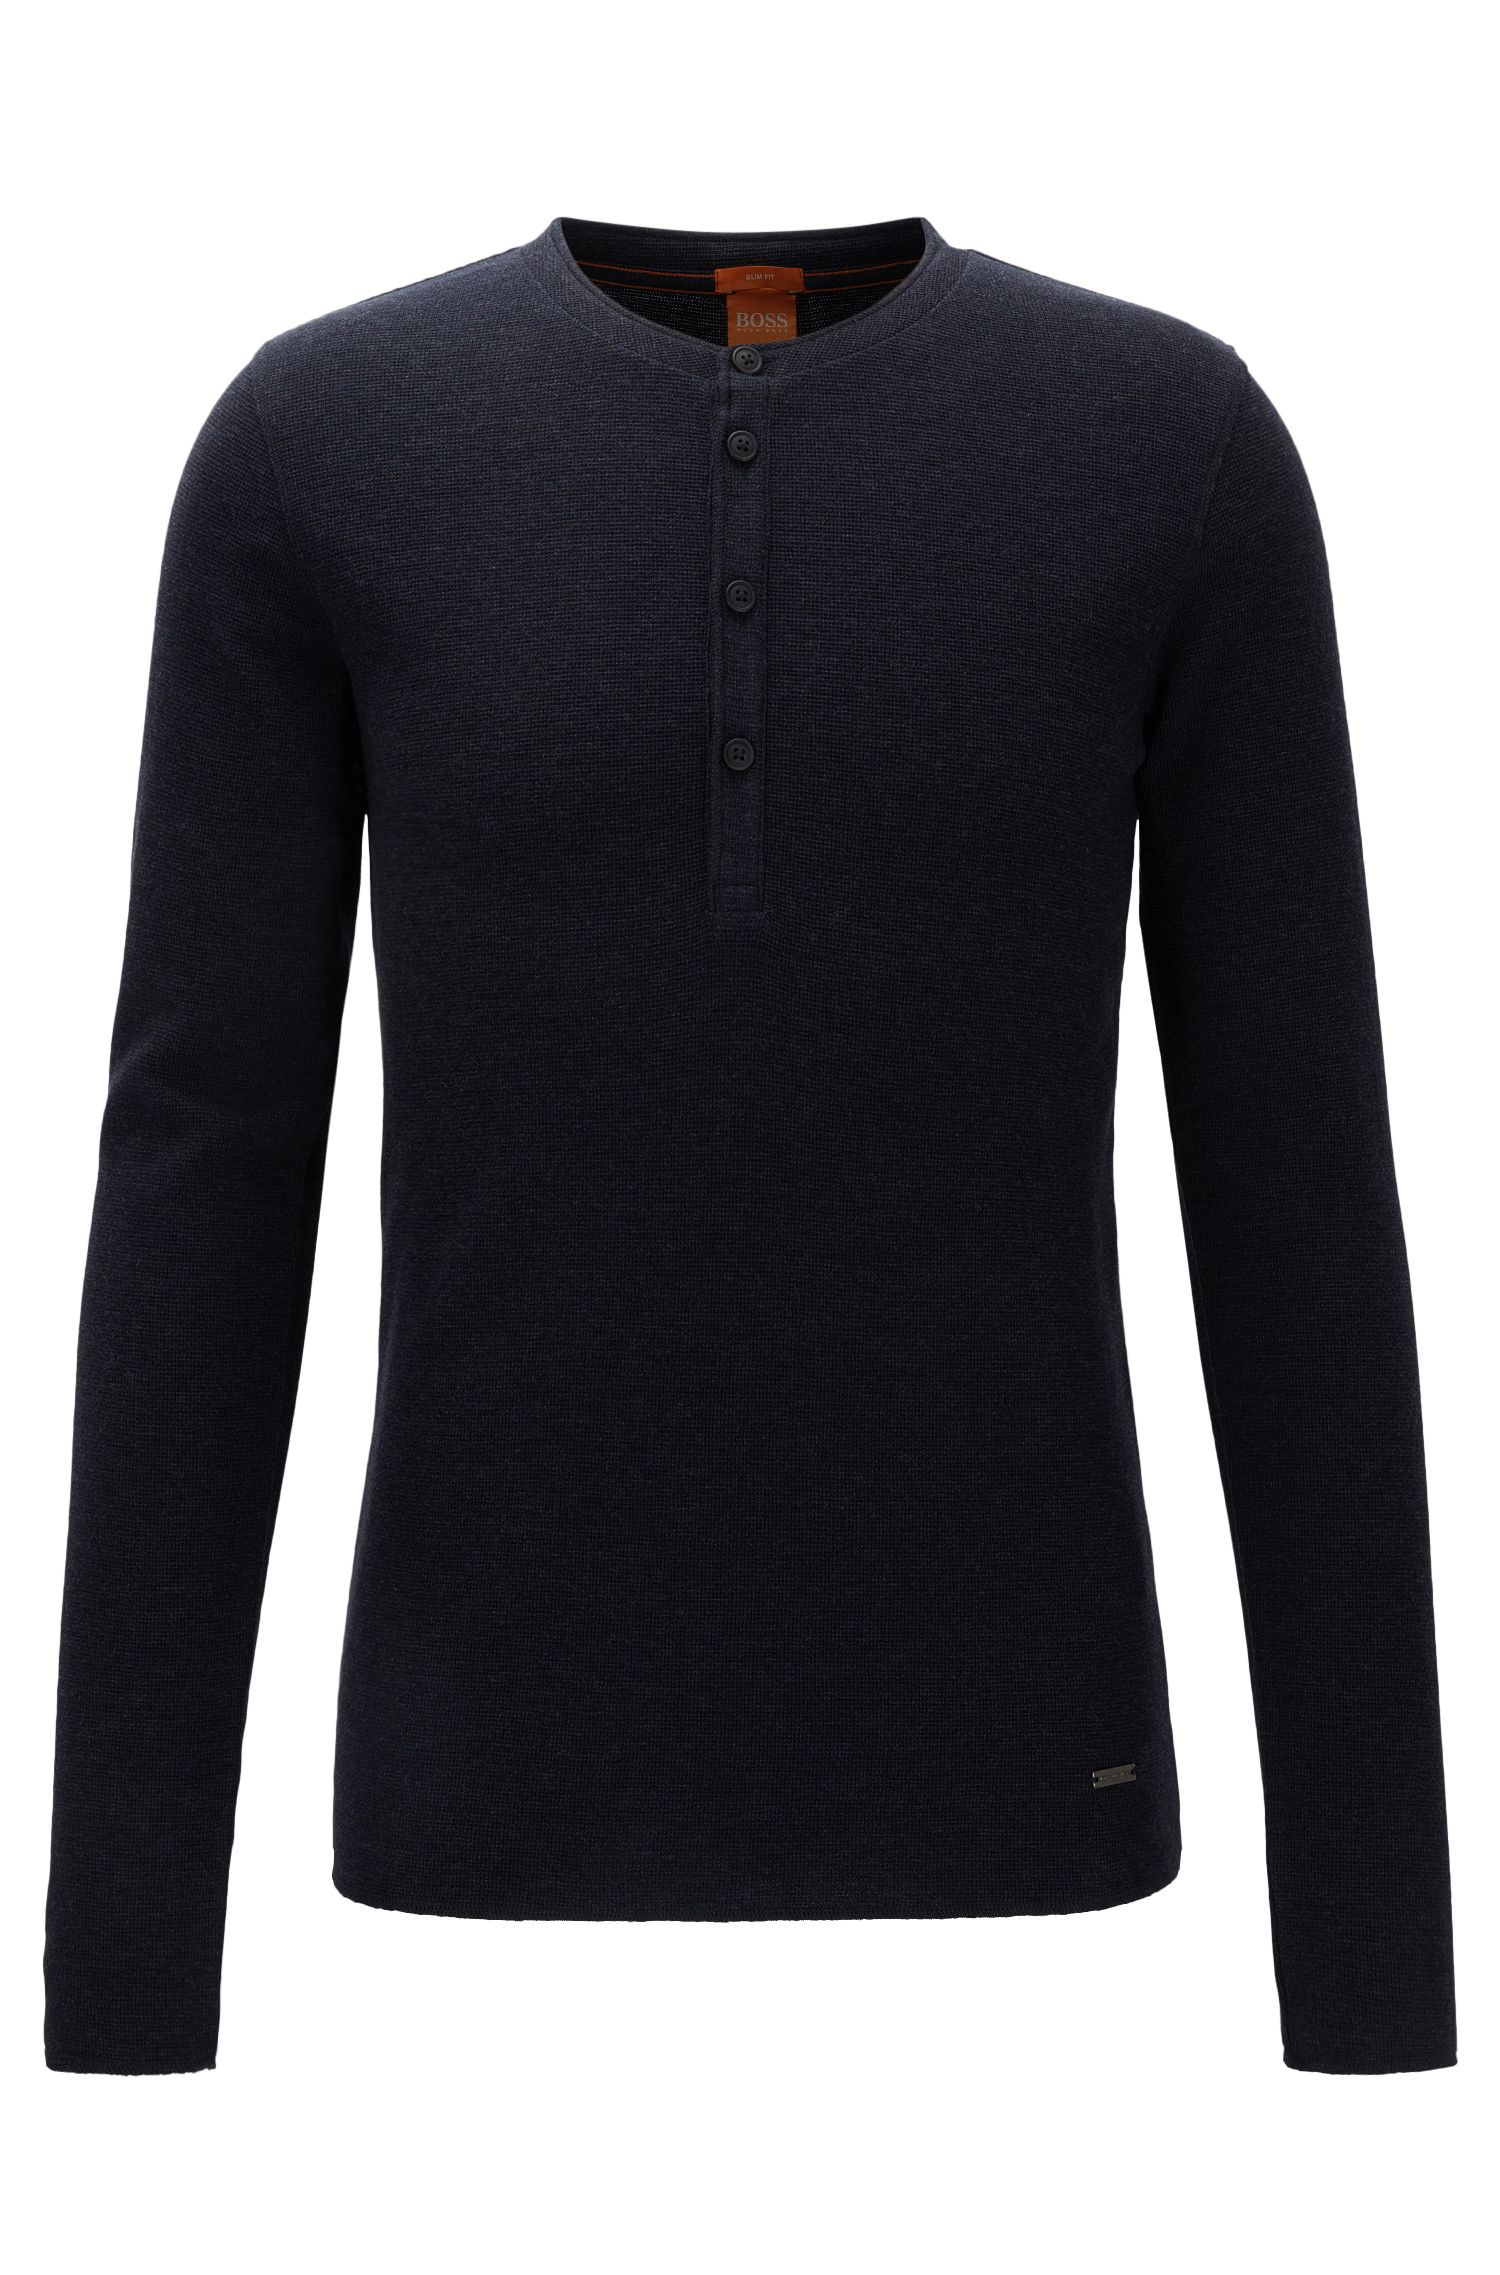 T-shirt slim fit stile Henley in cotone waffle